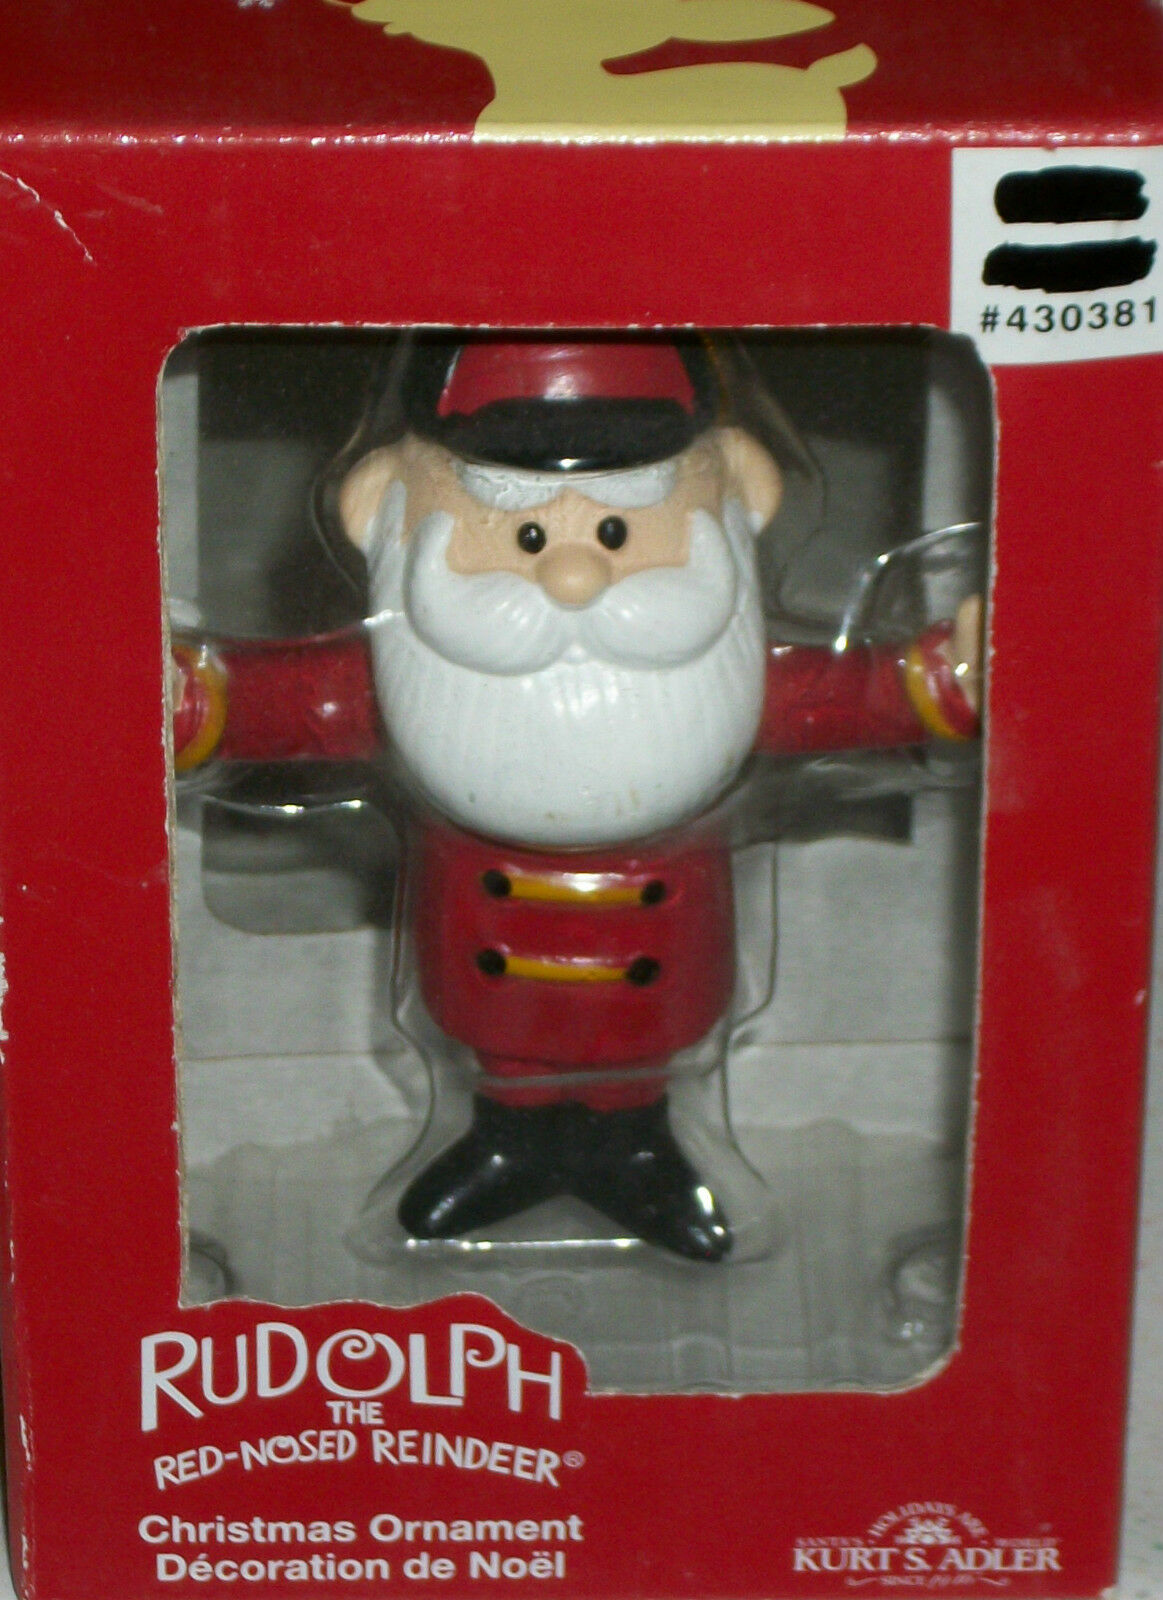 Rudolph The Red Nosed Reindeer Rankin Bass Santa Claus Xmas Island of Misfit Toy